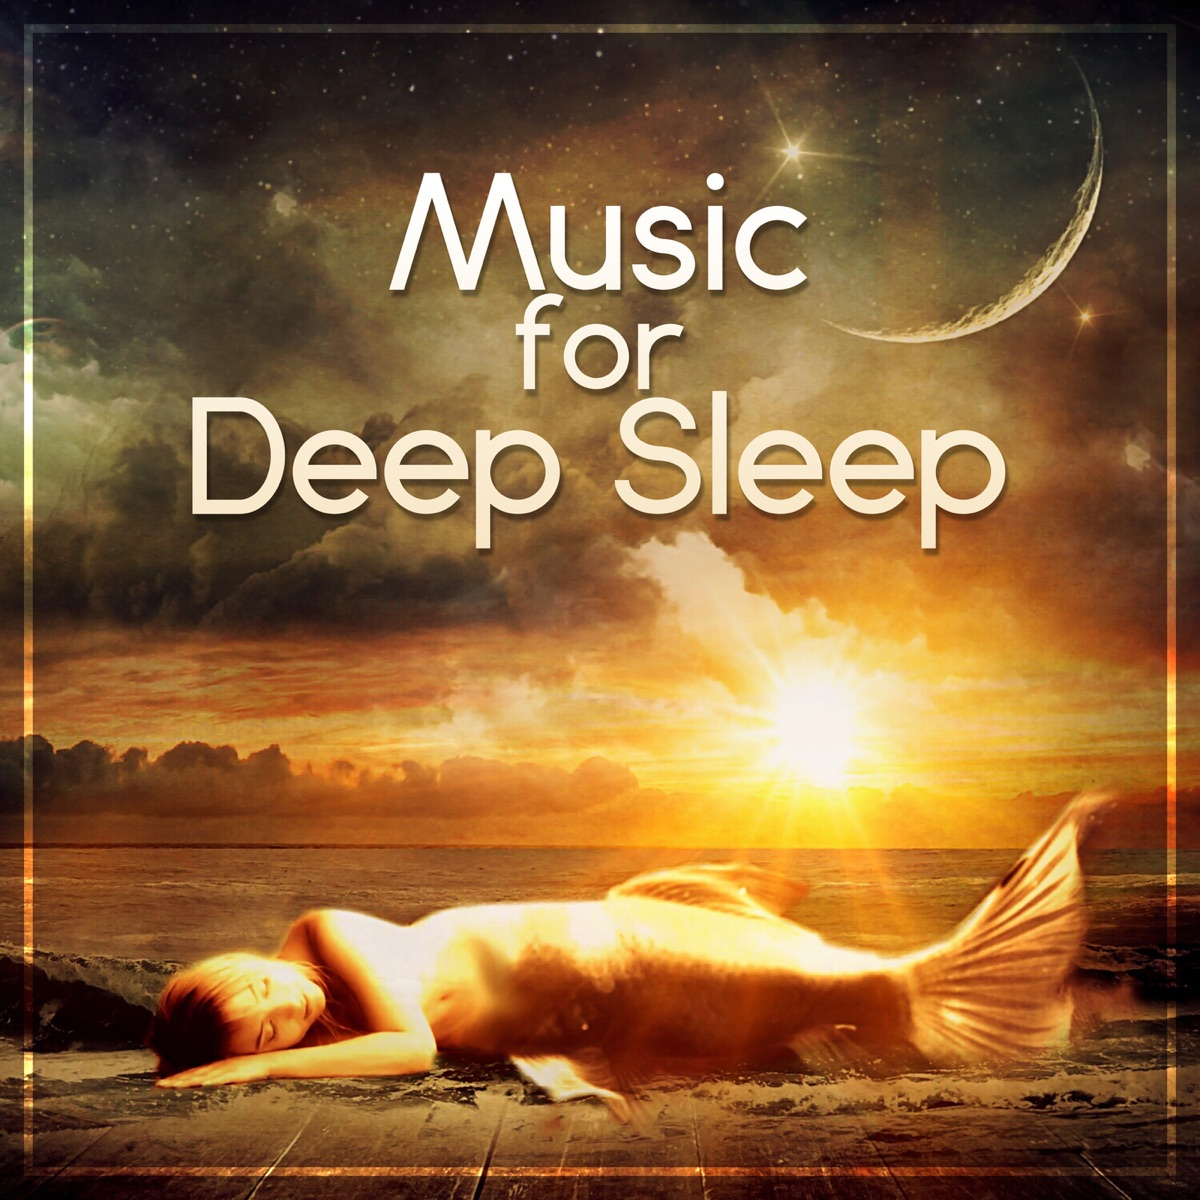 Deep Sleep Hypnosis:Calming Quiet Nature Sounds, Therapy Healing Sleep Songs, Soothing and Relaxing Ocean Waves, White Noise, Insomnia Cure